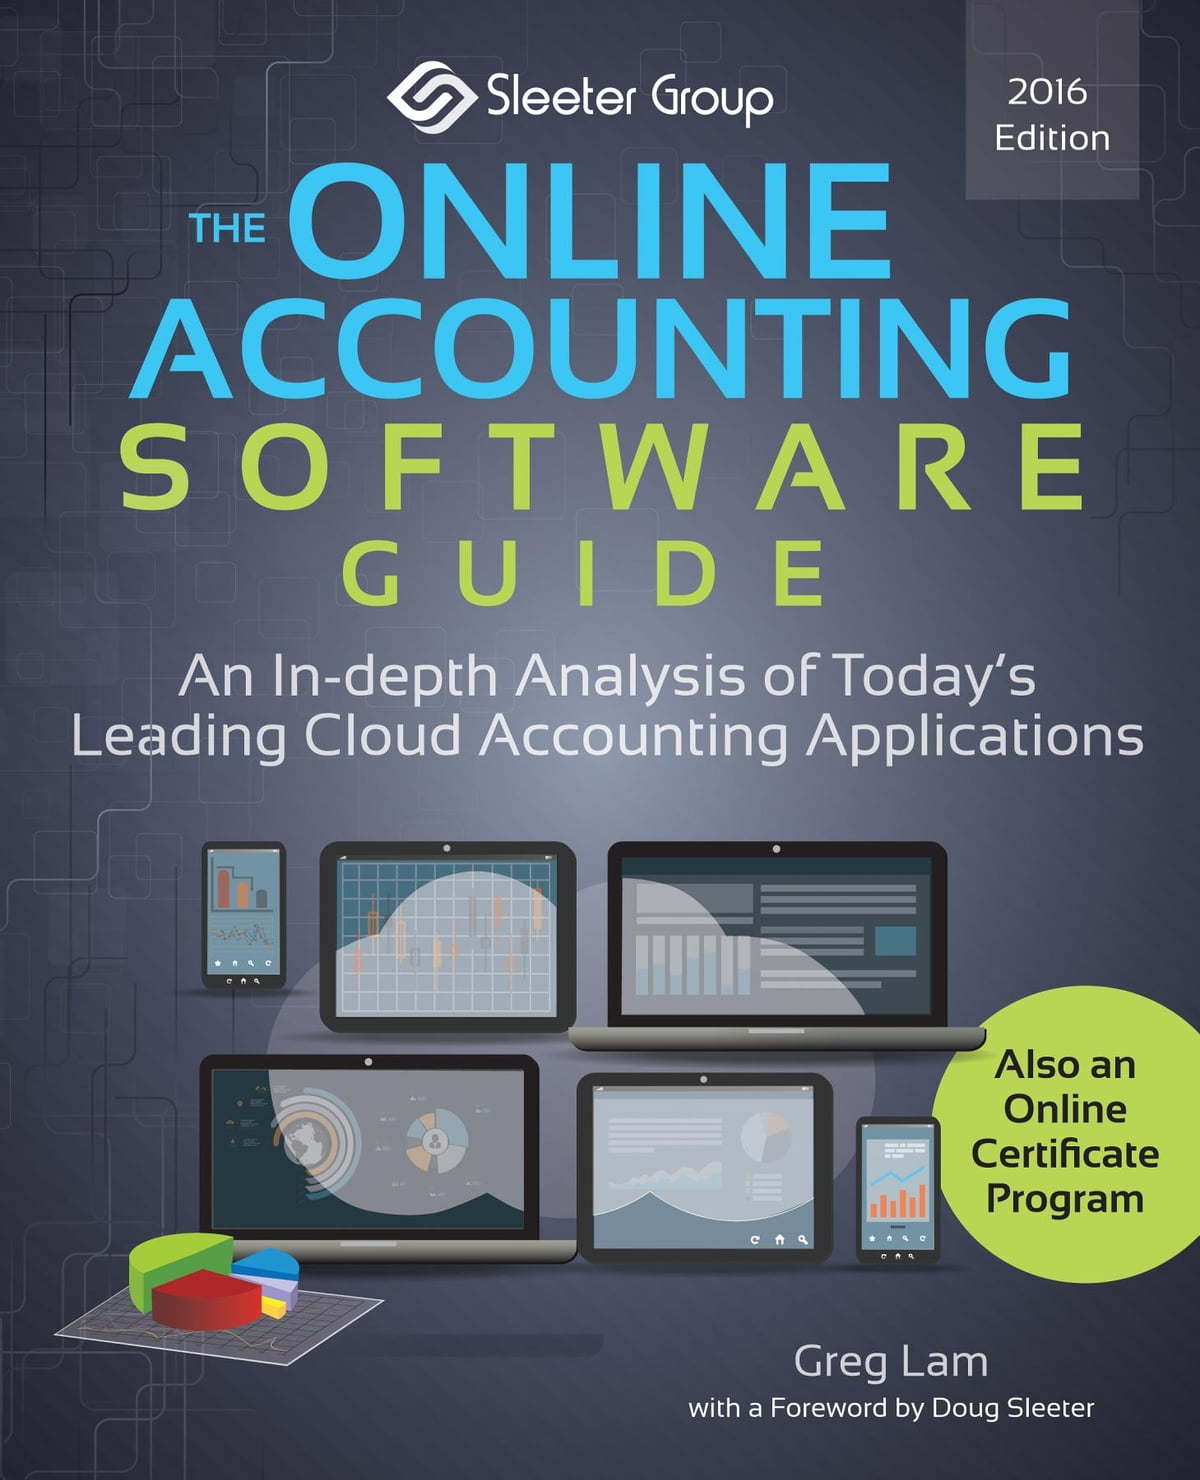 The online accounting software guide ebook by greg lam the online accounting software guide ebook by greg lam 9781942417149 rakuten kobo xflitez Choice Image